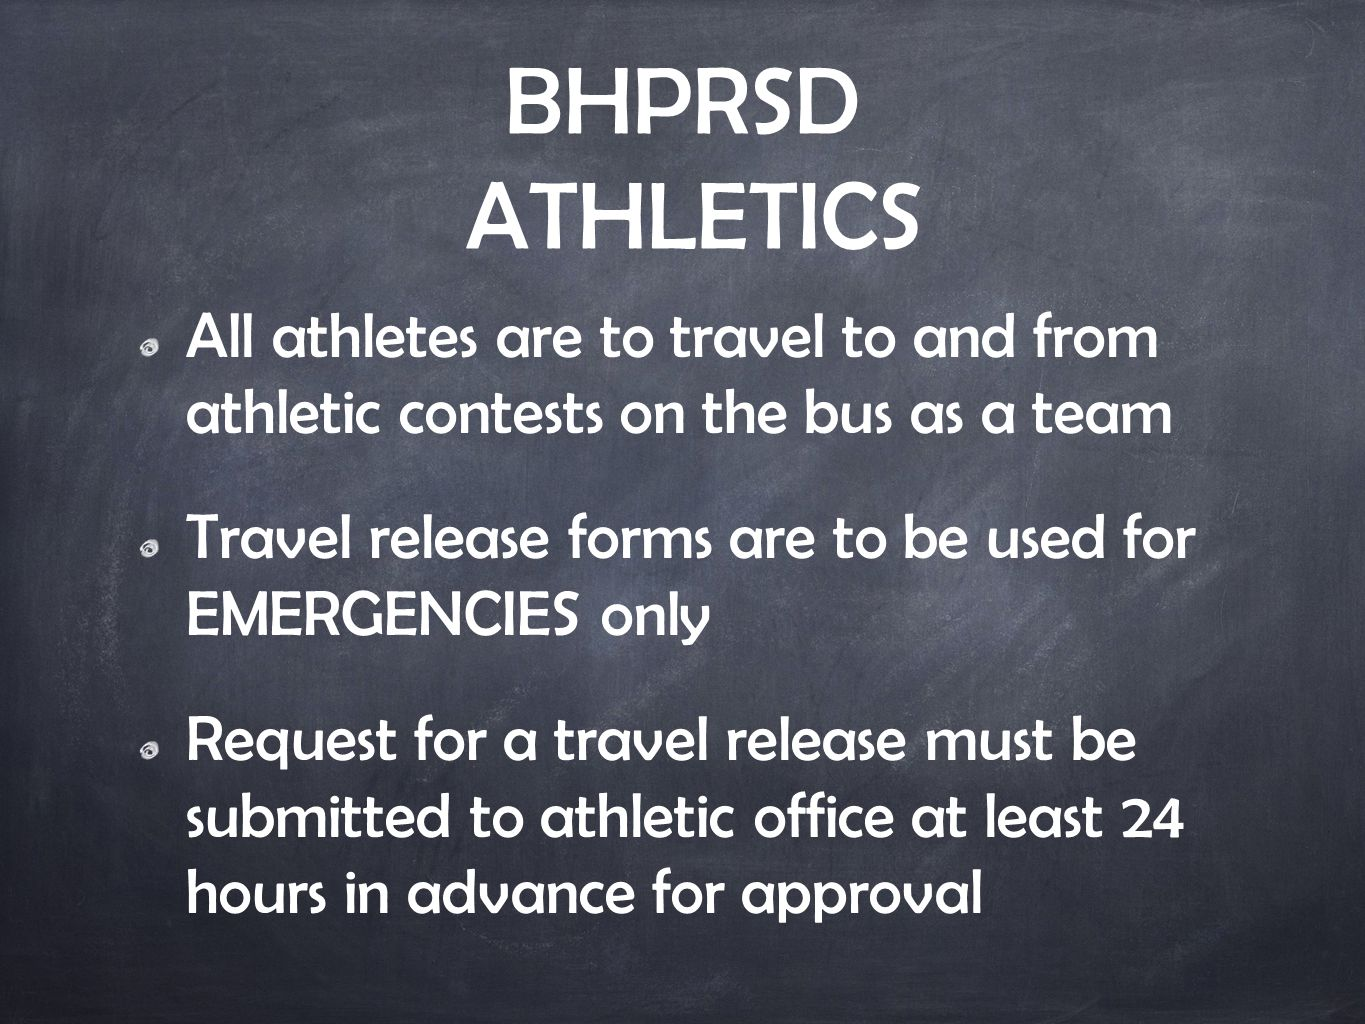 BHPRSD ATHLETICS All athletes are to travel to and from athletic contests on the bus as a team Travel release forms are to be used for EMERGENCIES onl